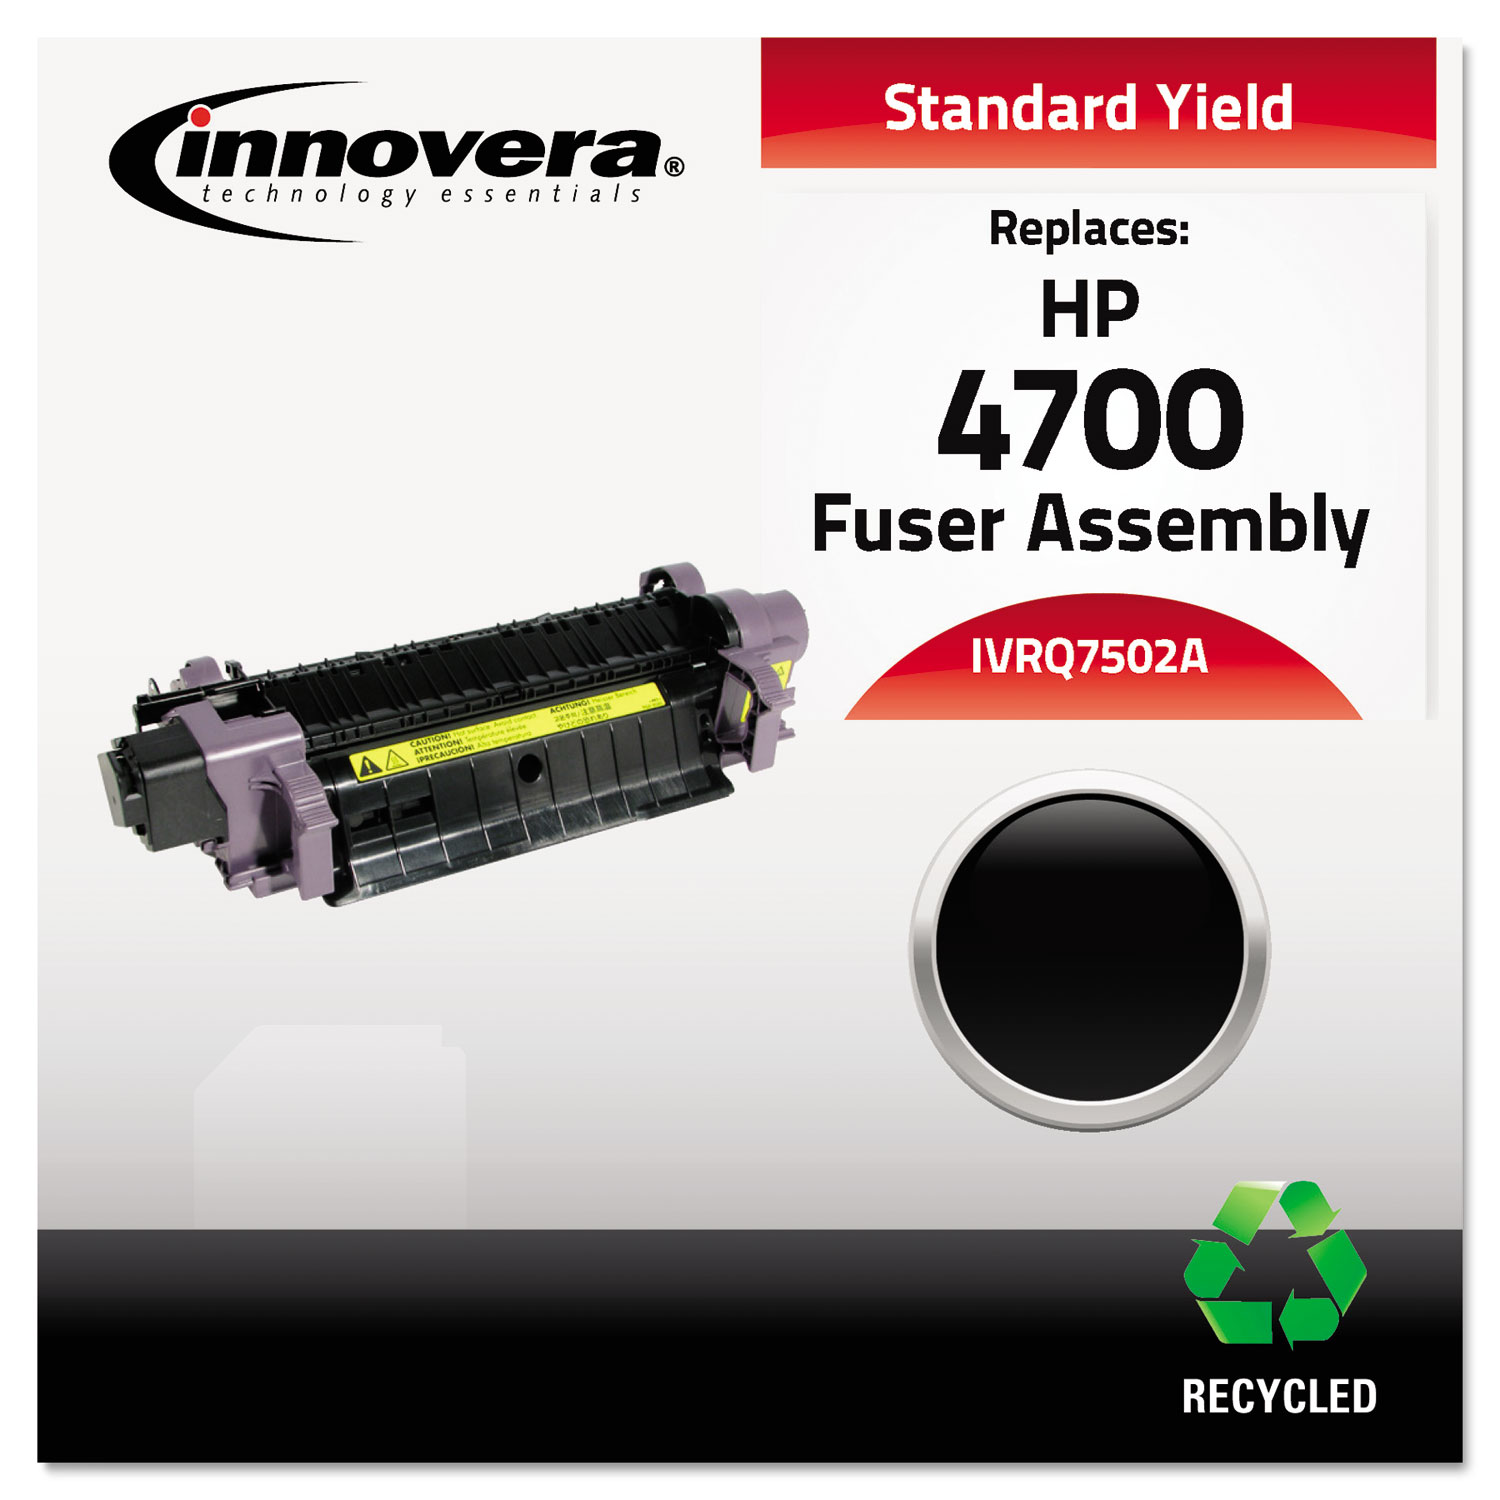 Remanufactured Q7502A (4700) Fuser, 100,000 Page-Yield IVRQ7502A